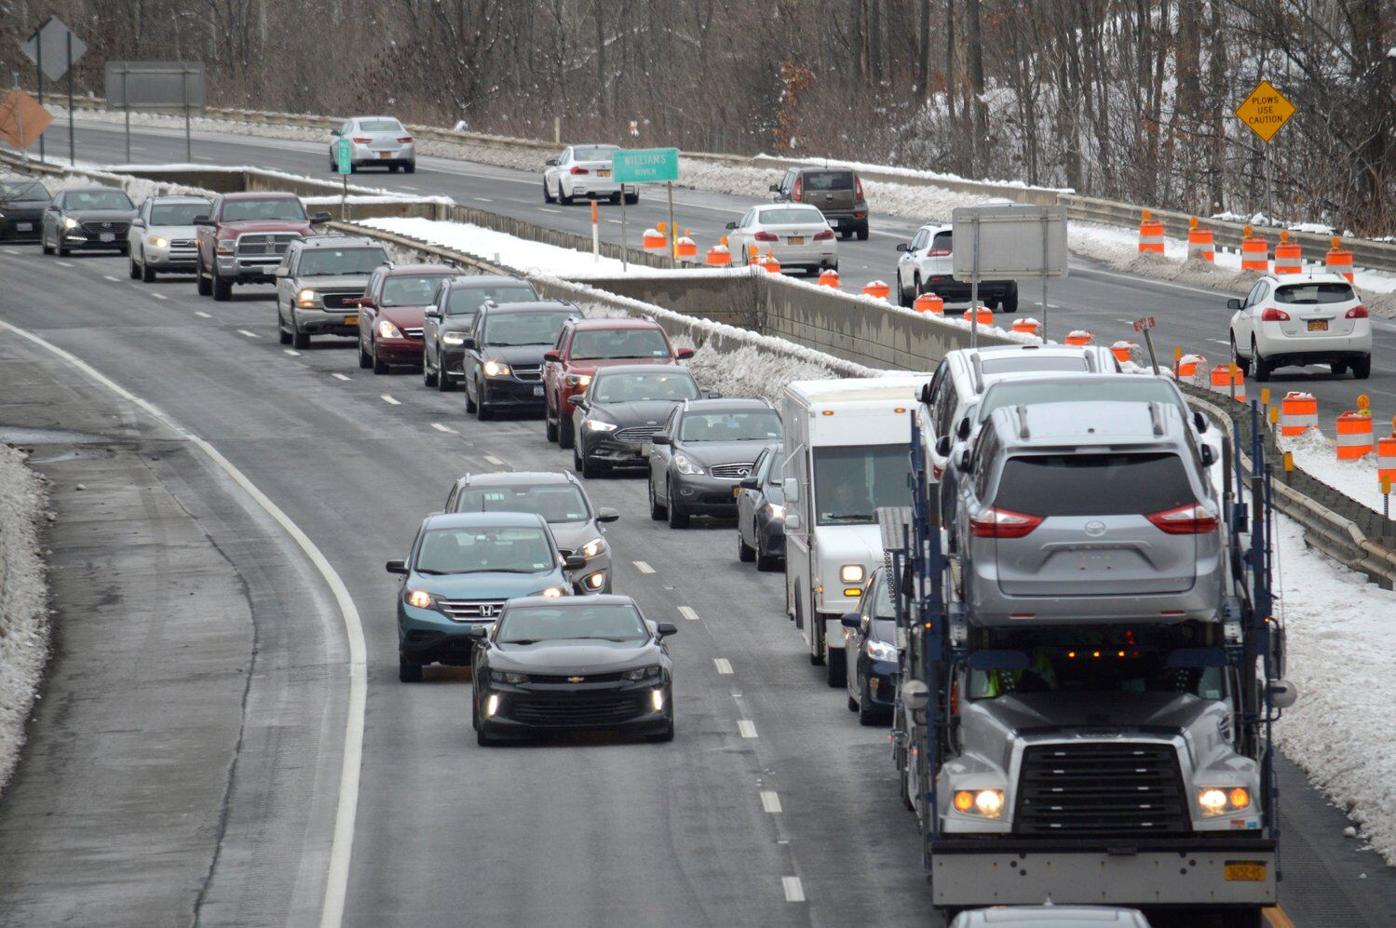 Our Opinion: On to more pressing transit issues as Blandford exit nixed